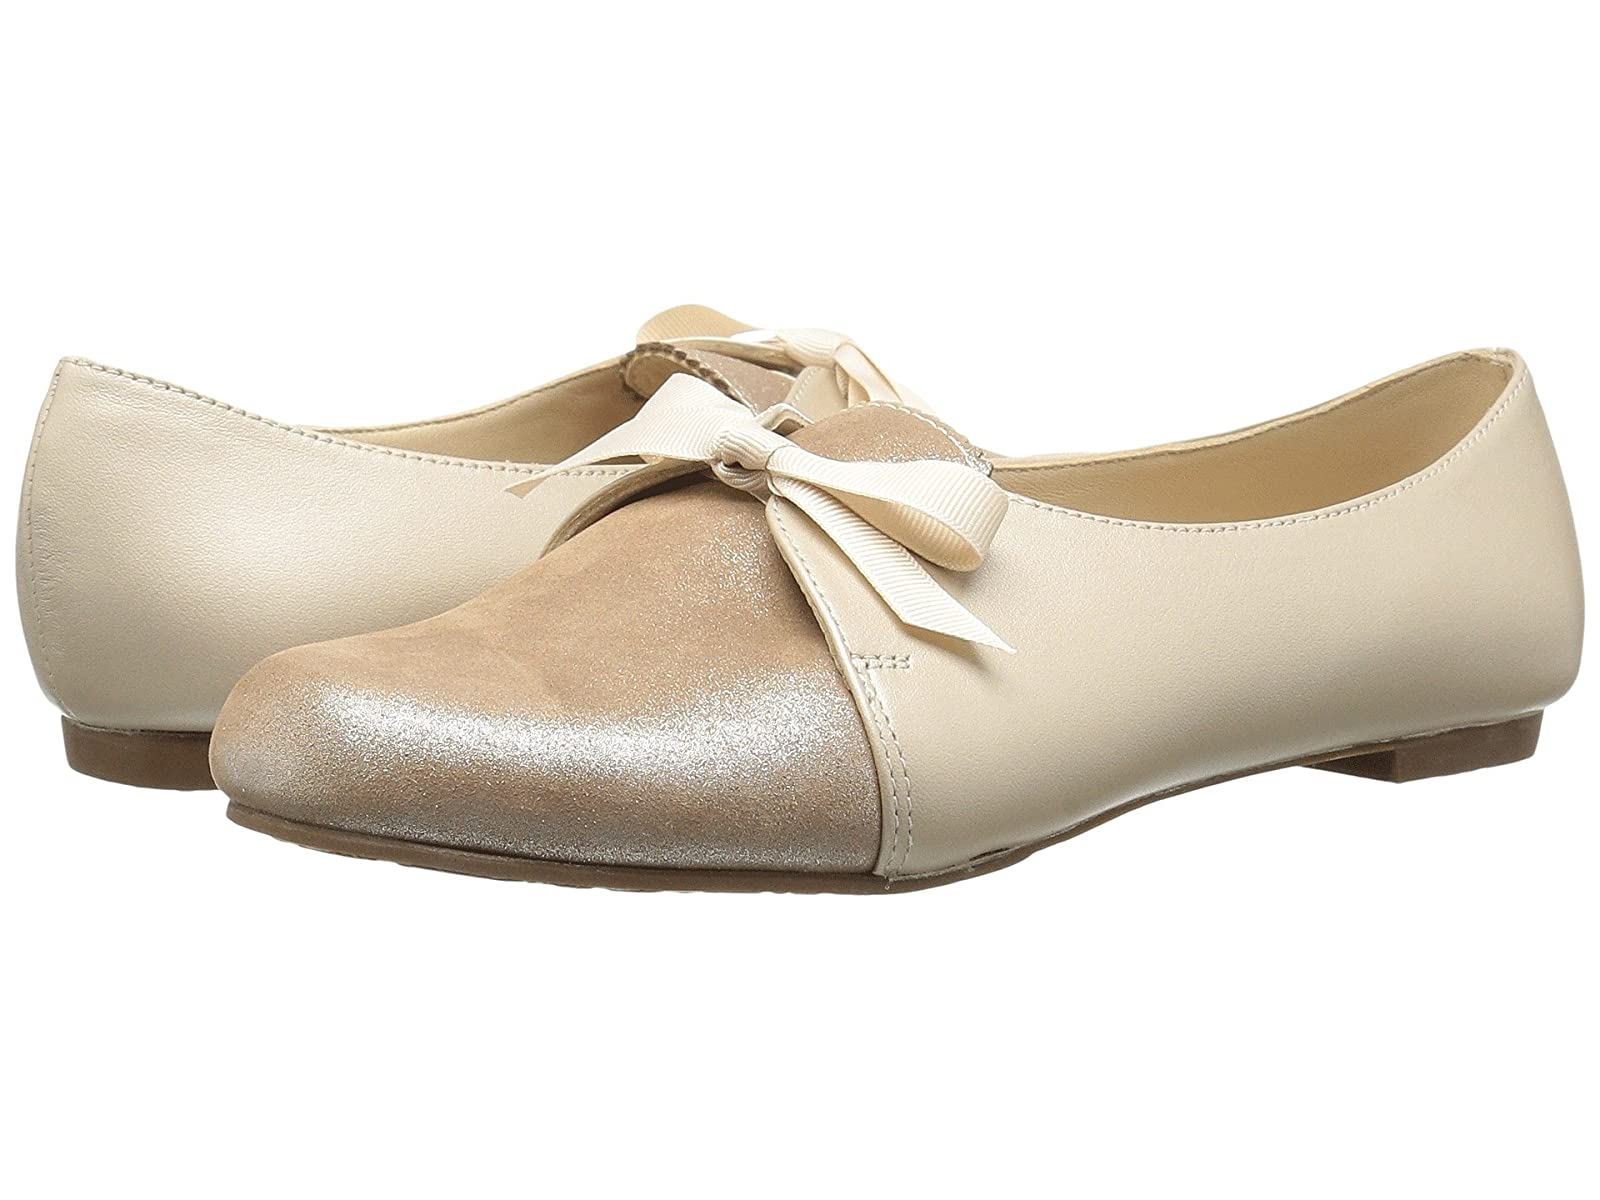 Elephantito Rosie Sleepers (Toddler/Little Kid/Big Kid)Atmospheric grades have affordable shoes